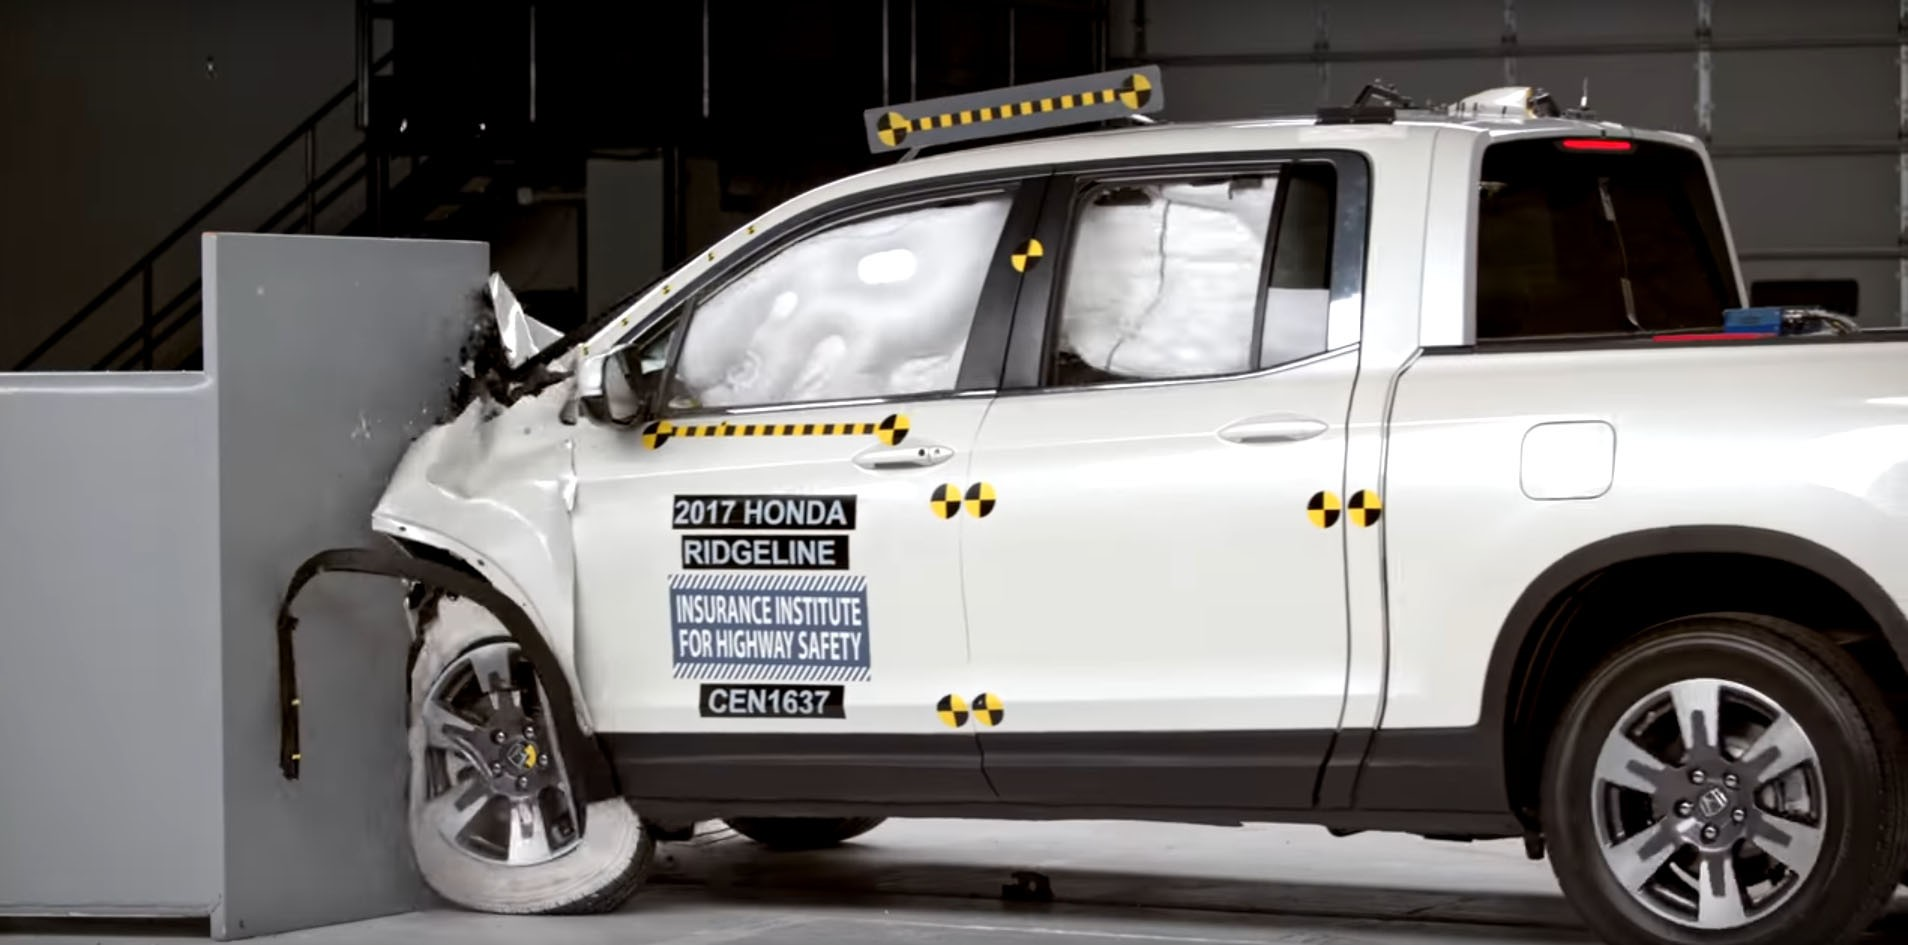 2017 Honda Ridgeline IIHS Crash Test